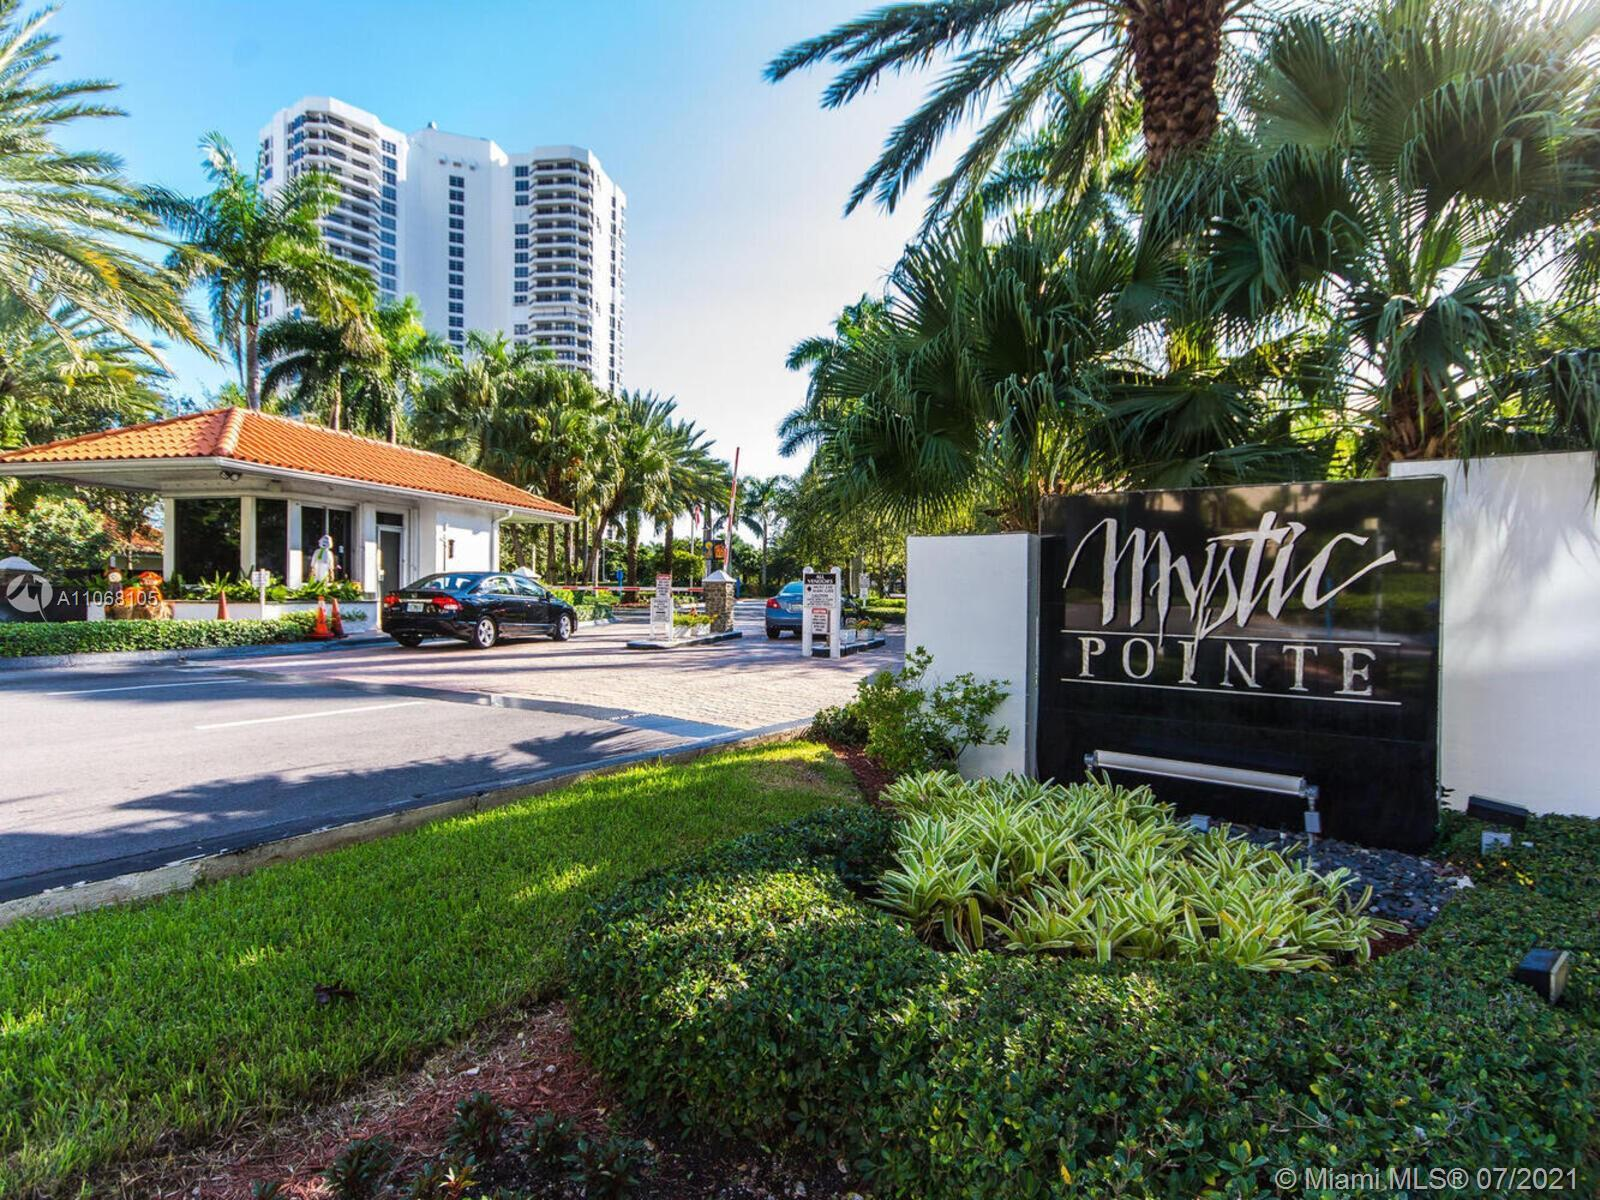 MOST DESIRABLE 2 BD 2.5 BA LINE IN MYSTIC POINTE TOWER 500. PANORAMIC VIEWS OF THE INTRACOASTAL WATE